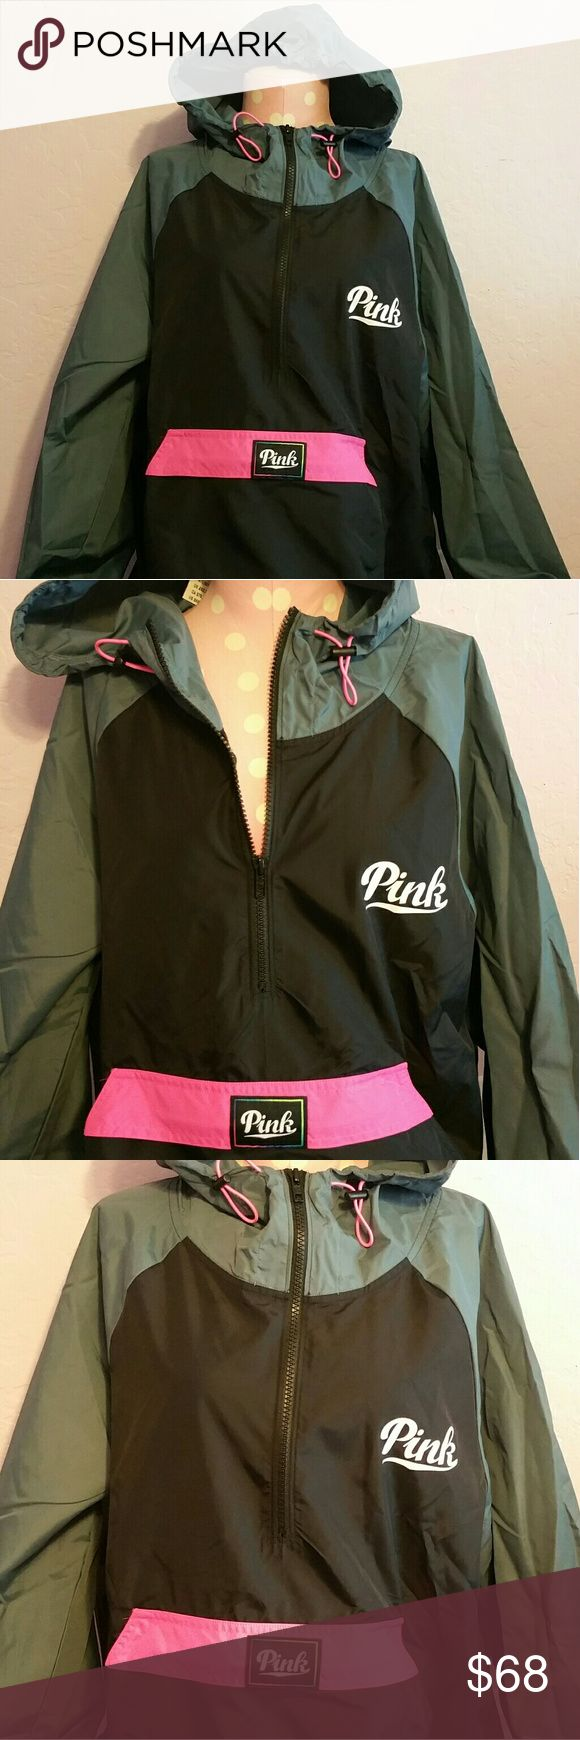 Victoria's Secret PINK Anorak Jacket Windbreaker Brand new with tag! HARD TO FIND COLOR! Victoria's Secret PINK Anorak Jacket Windbreaker Pullover Colors are....Black, Grey, Pink & White Size is MEDIUM/LARGE Victoria's Secret Jackets & Coats